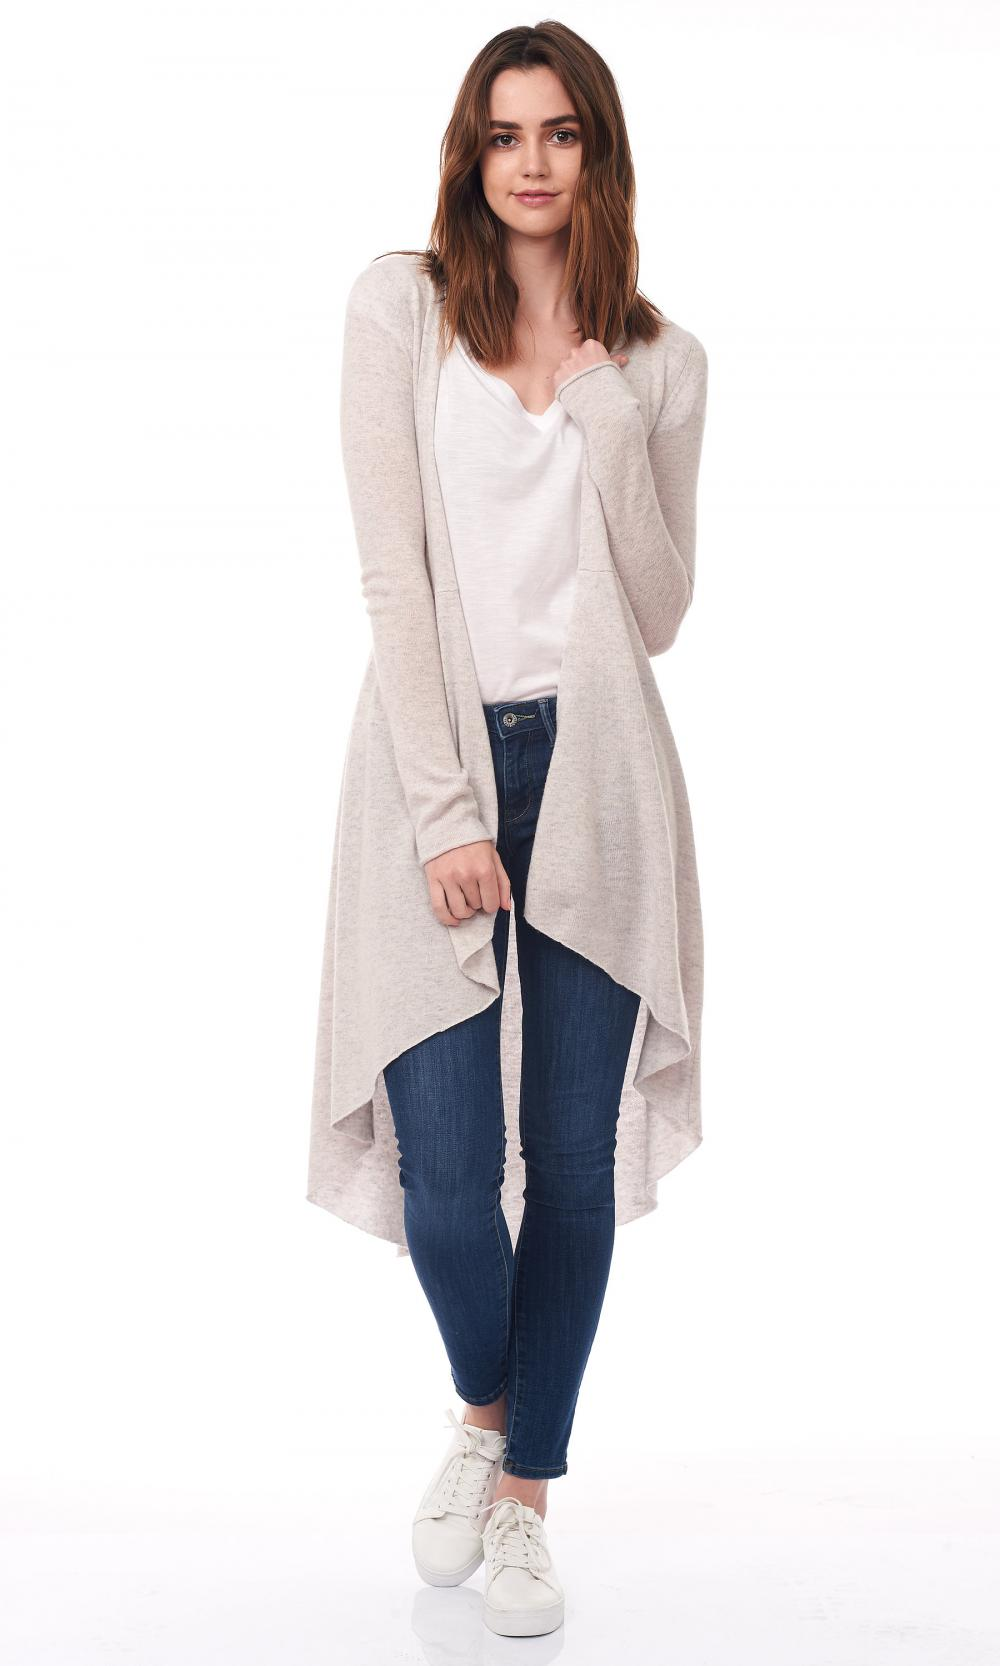 The Ladies Long Cardigan loe Duster